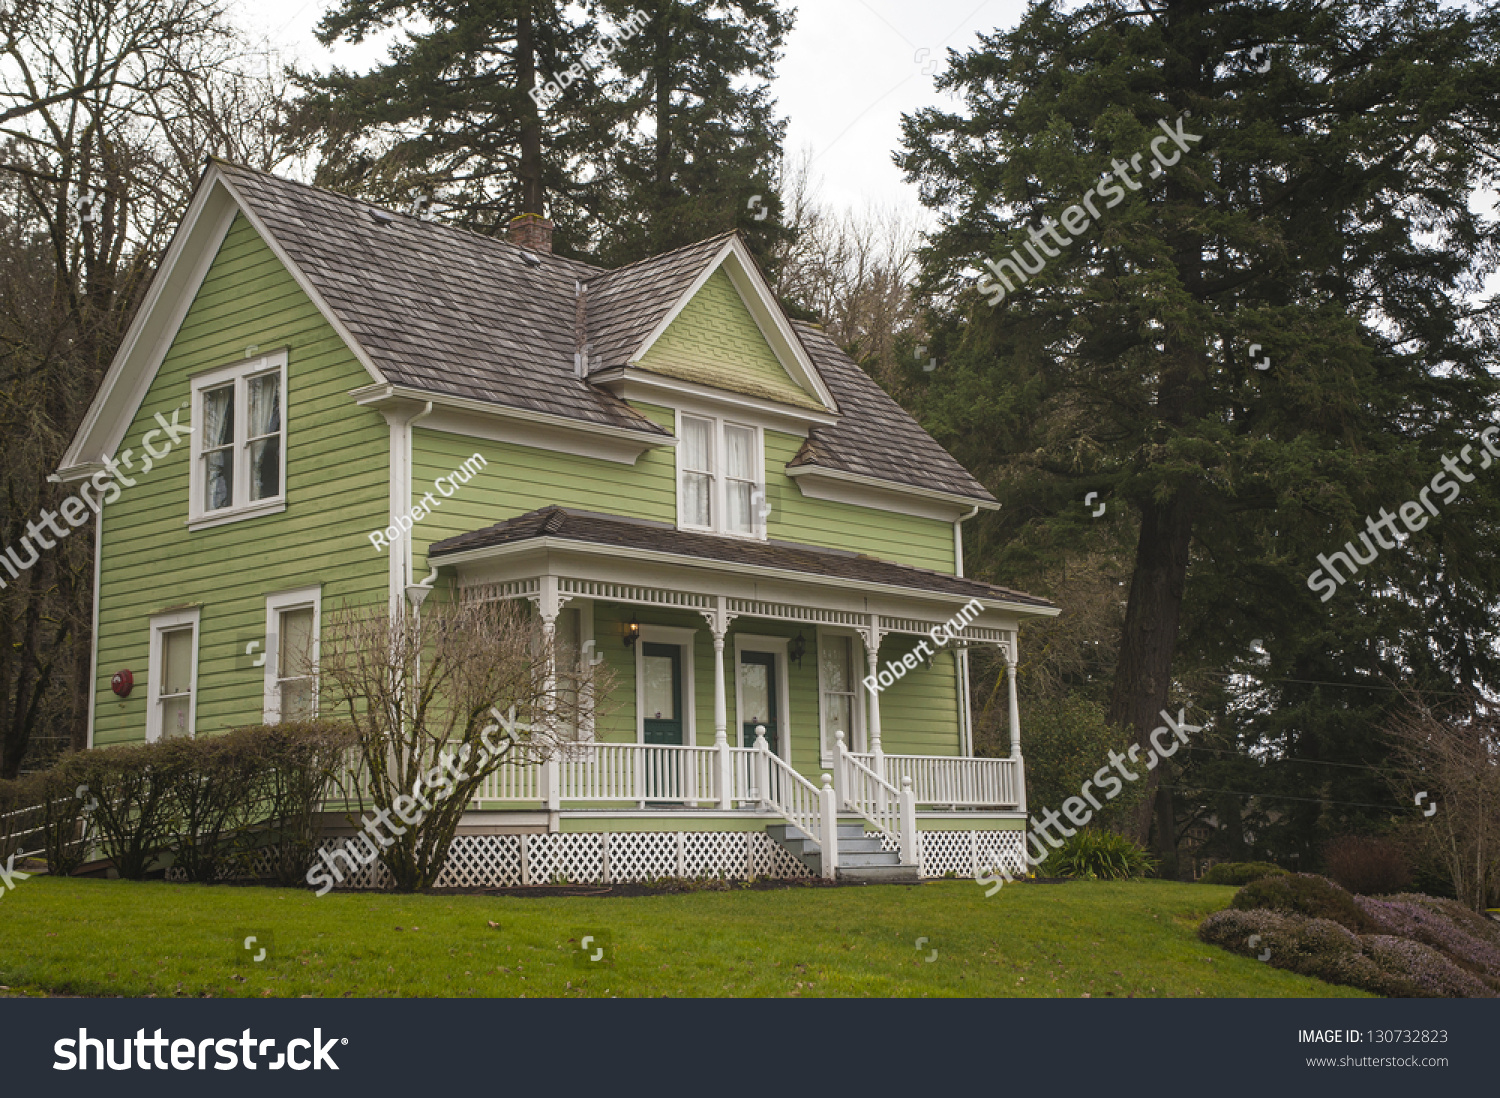 Old fashioned house gallery for Old fashioned house plans